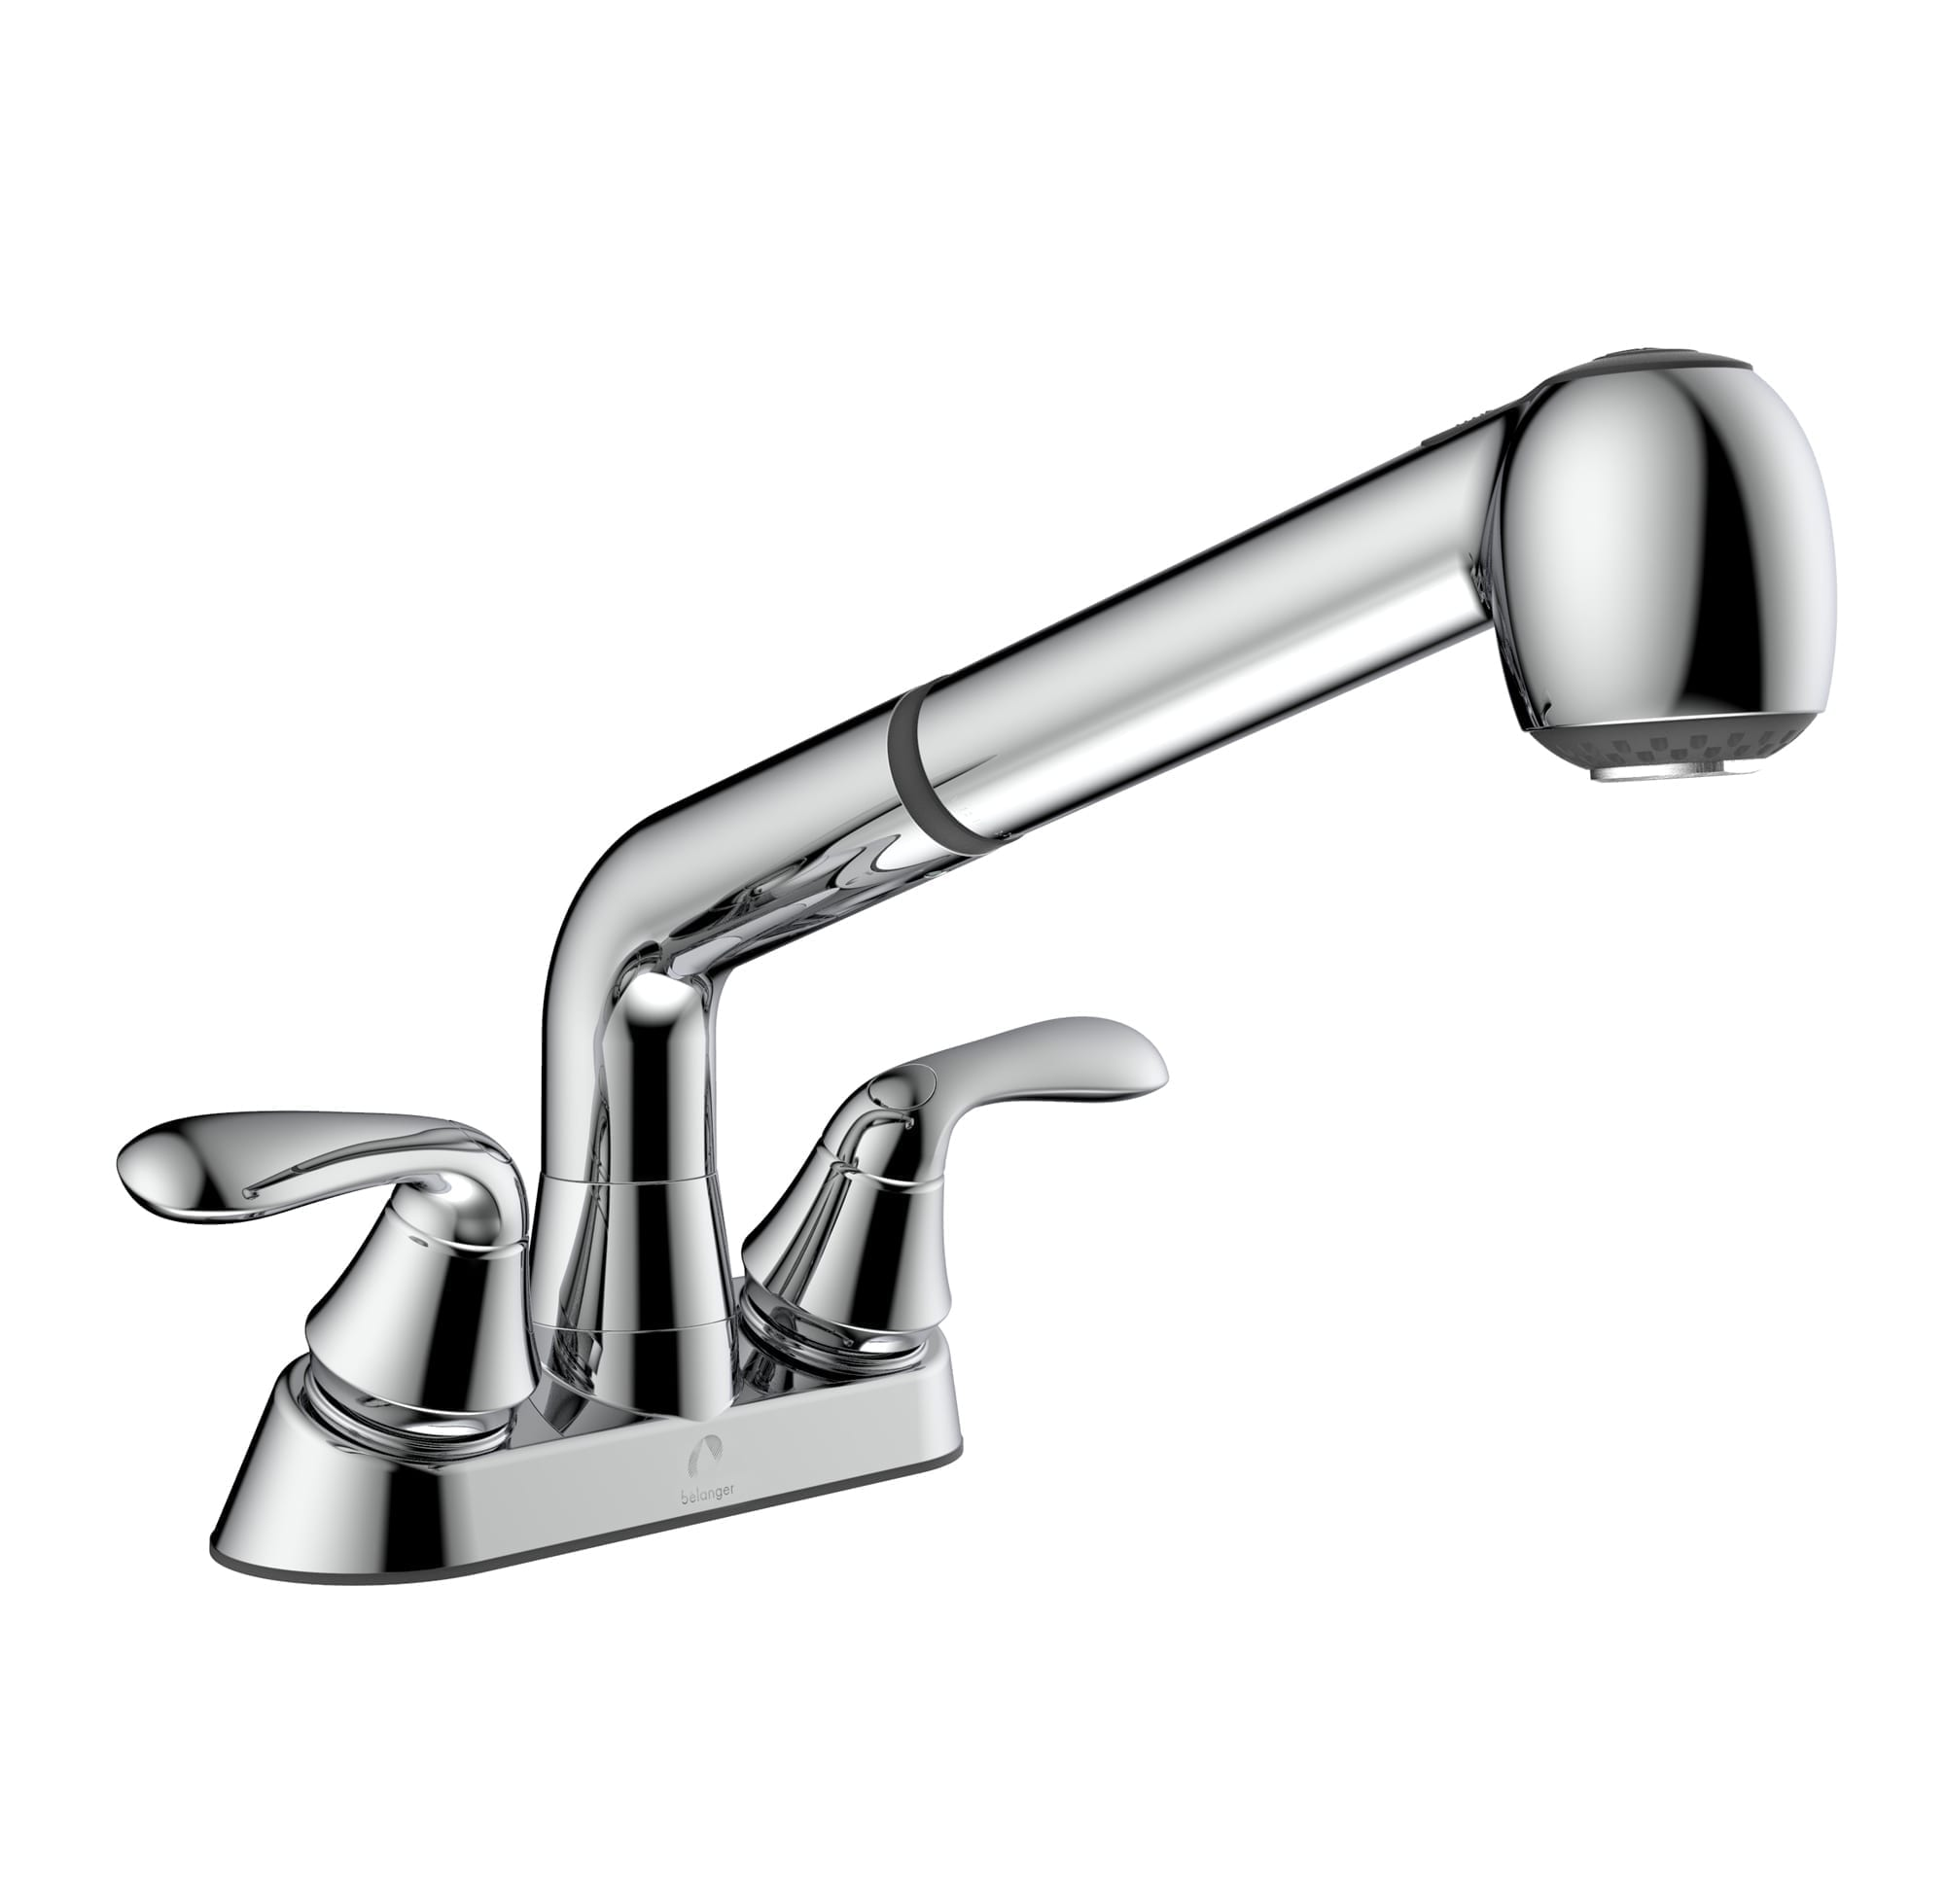 laundry tub faucet with swivel pull out